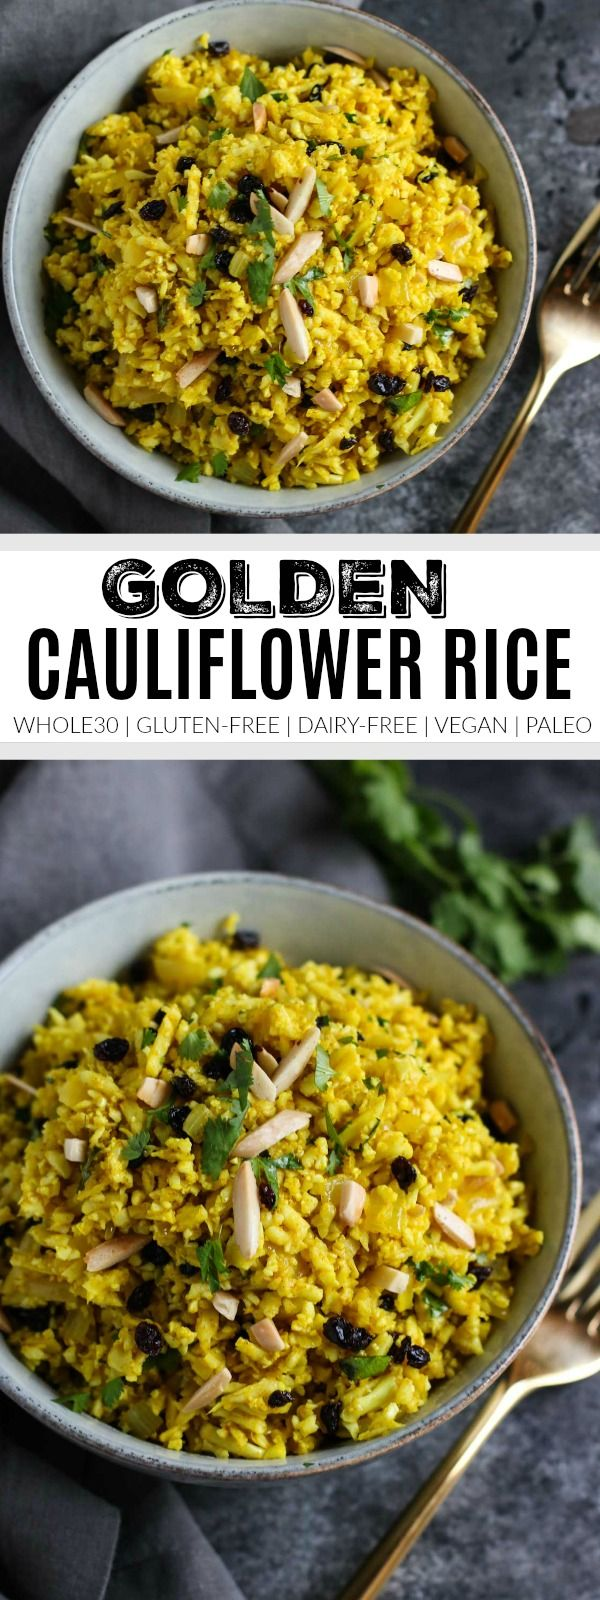 Golden Cauliflower Rice - The Real Food Dietitians